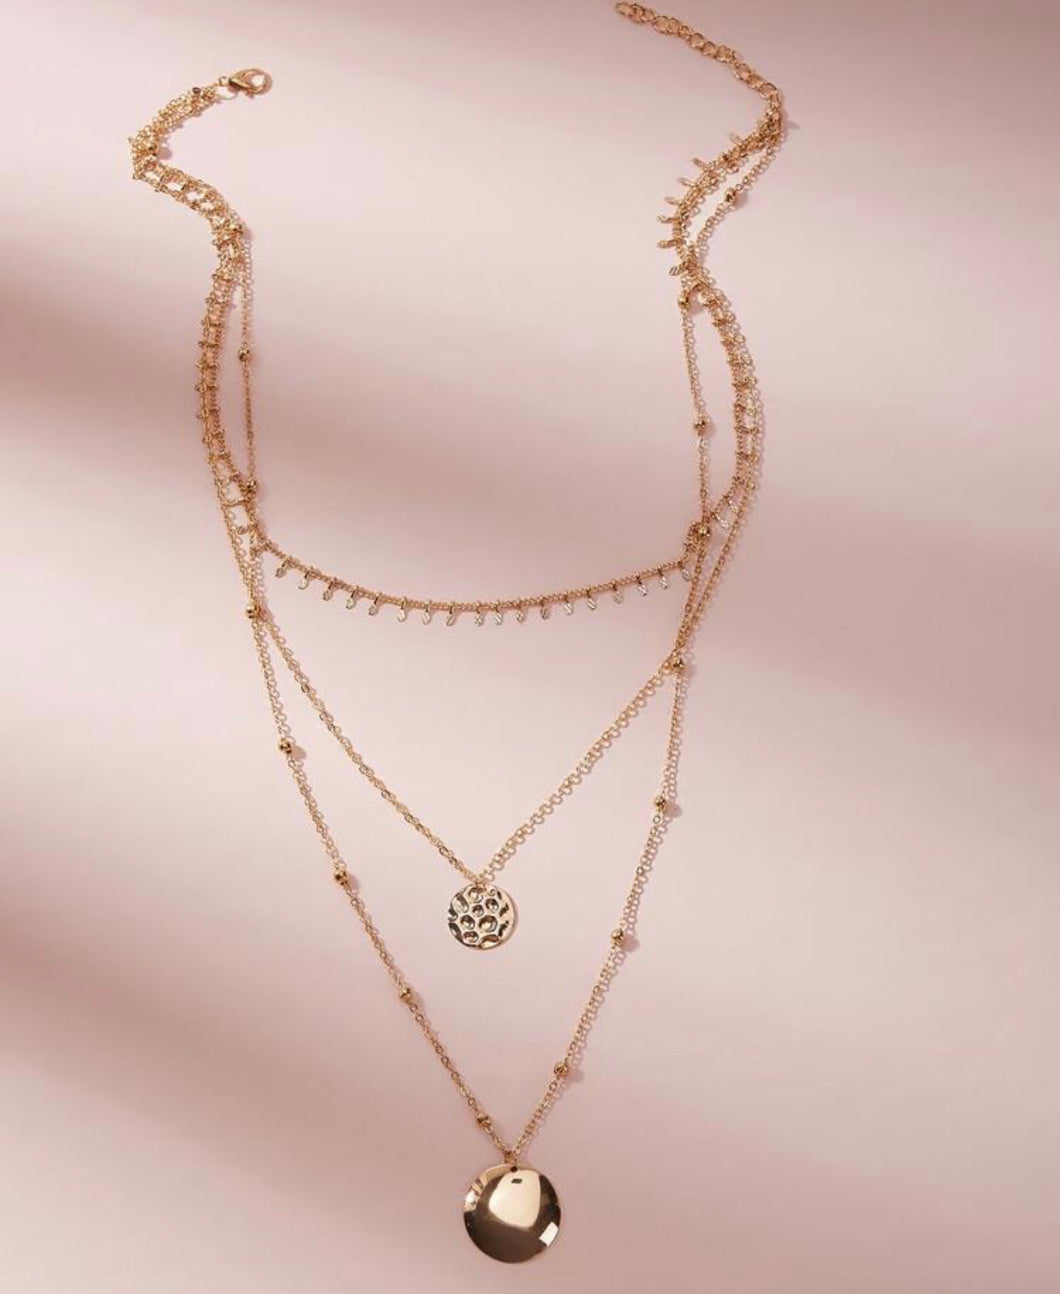 Max Layered Necklace